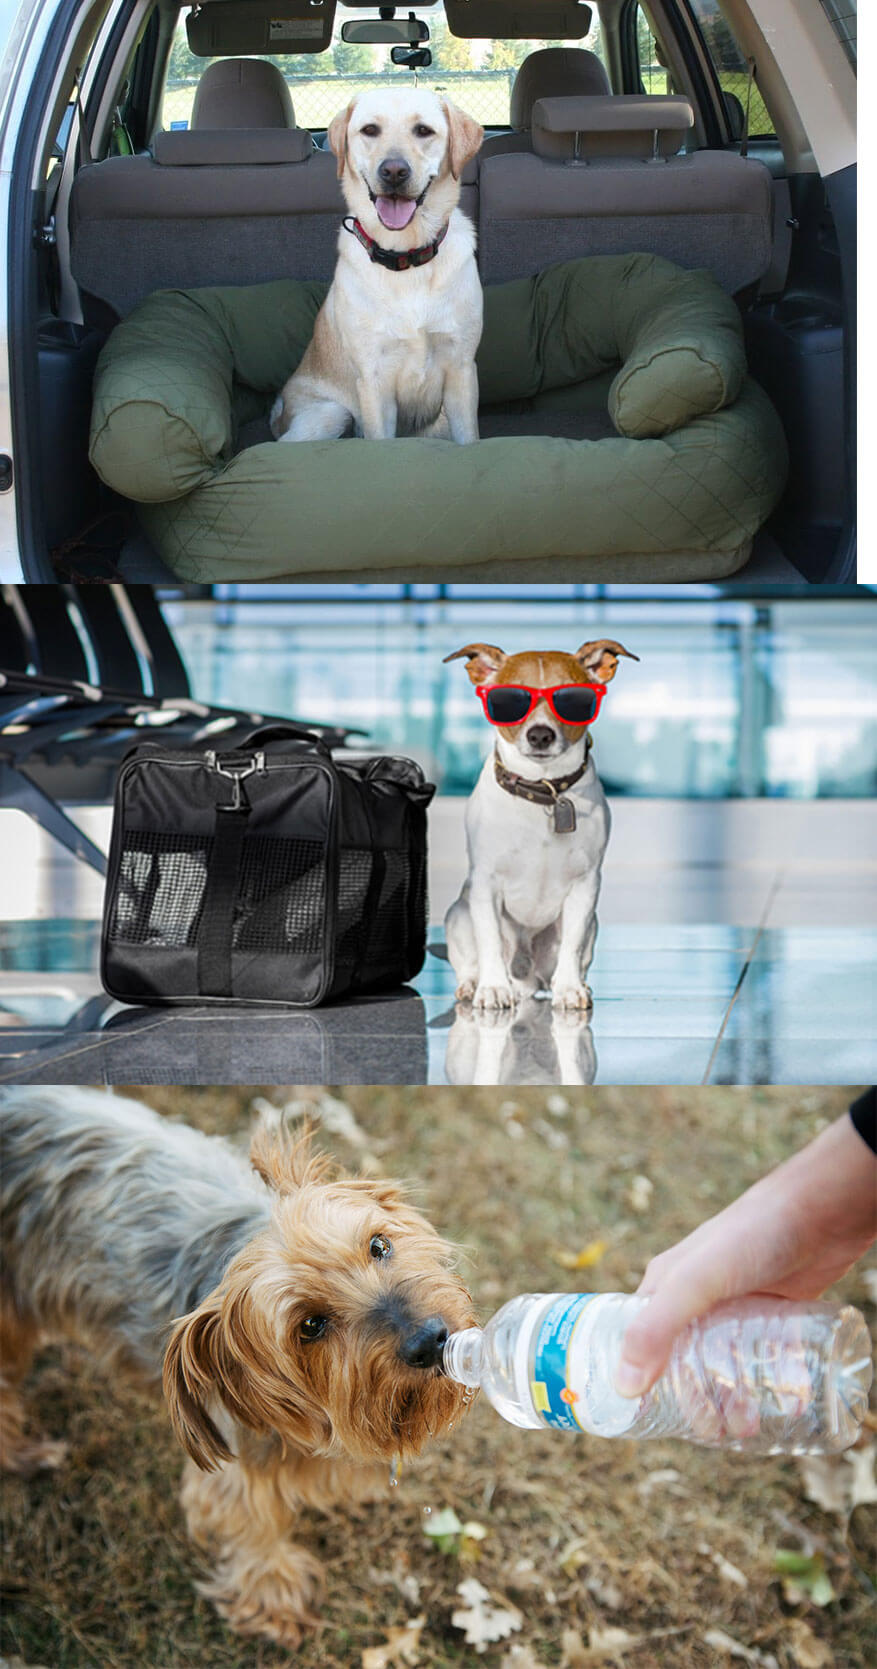 Consider these Important Rules While Traveling with Your Pet